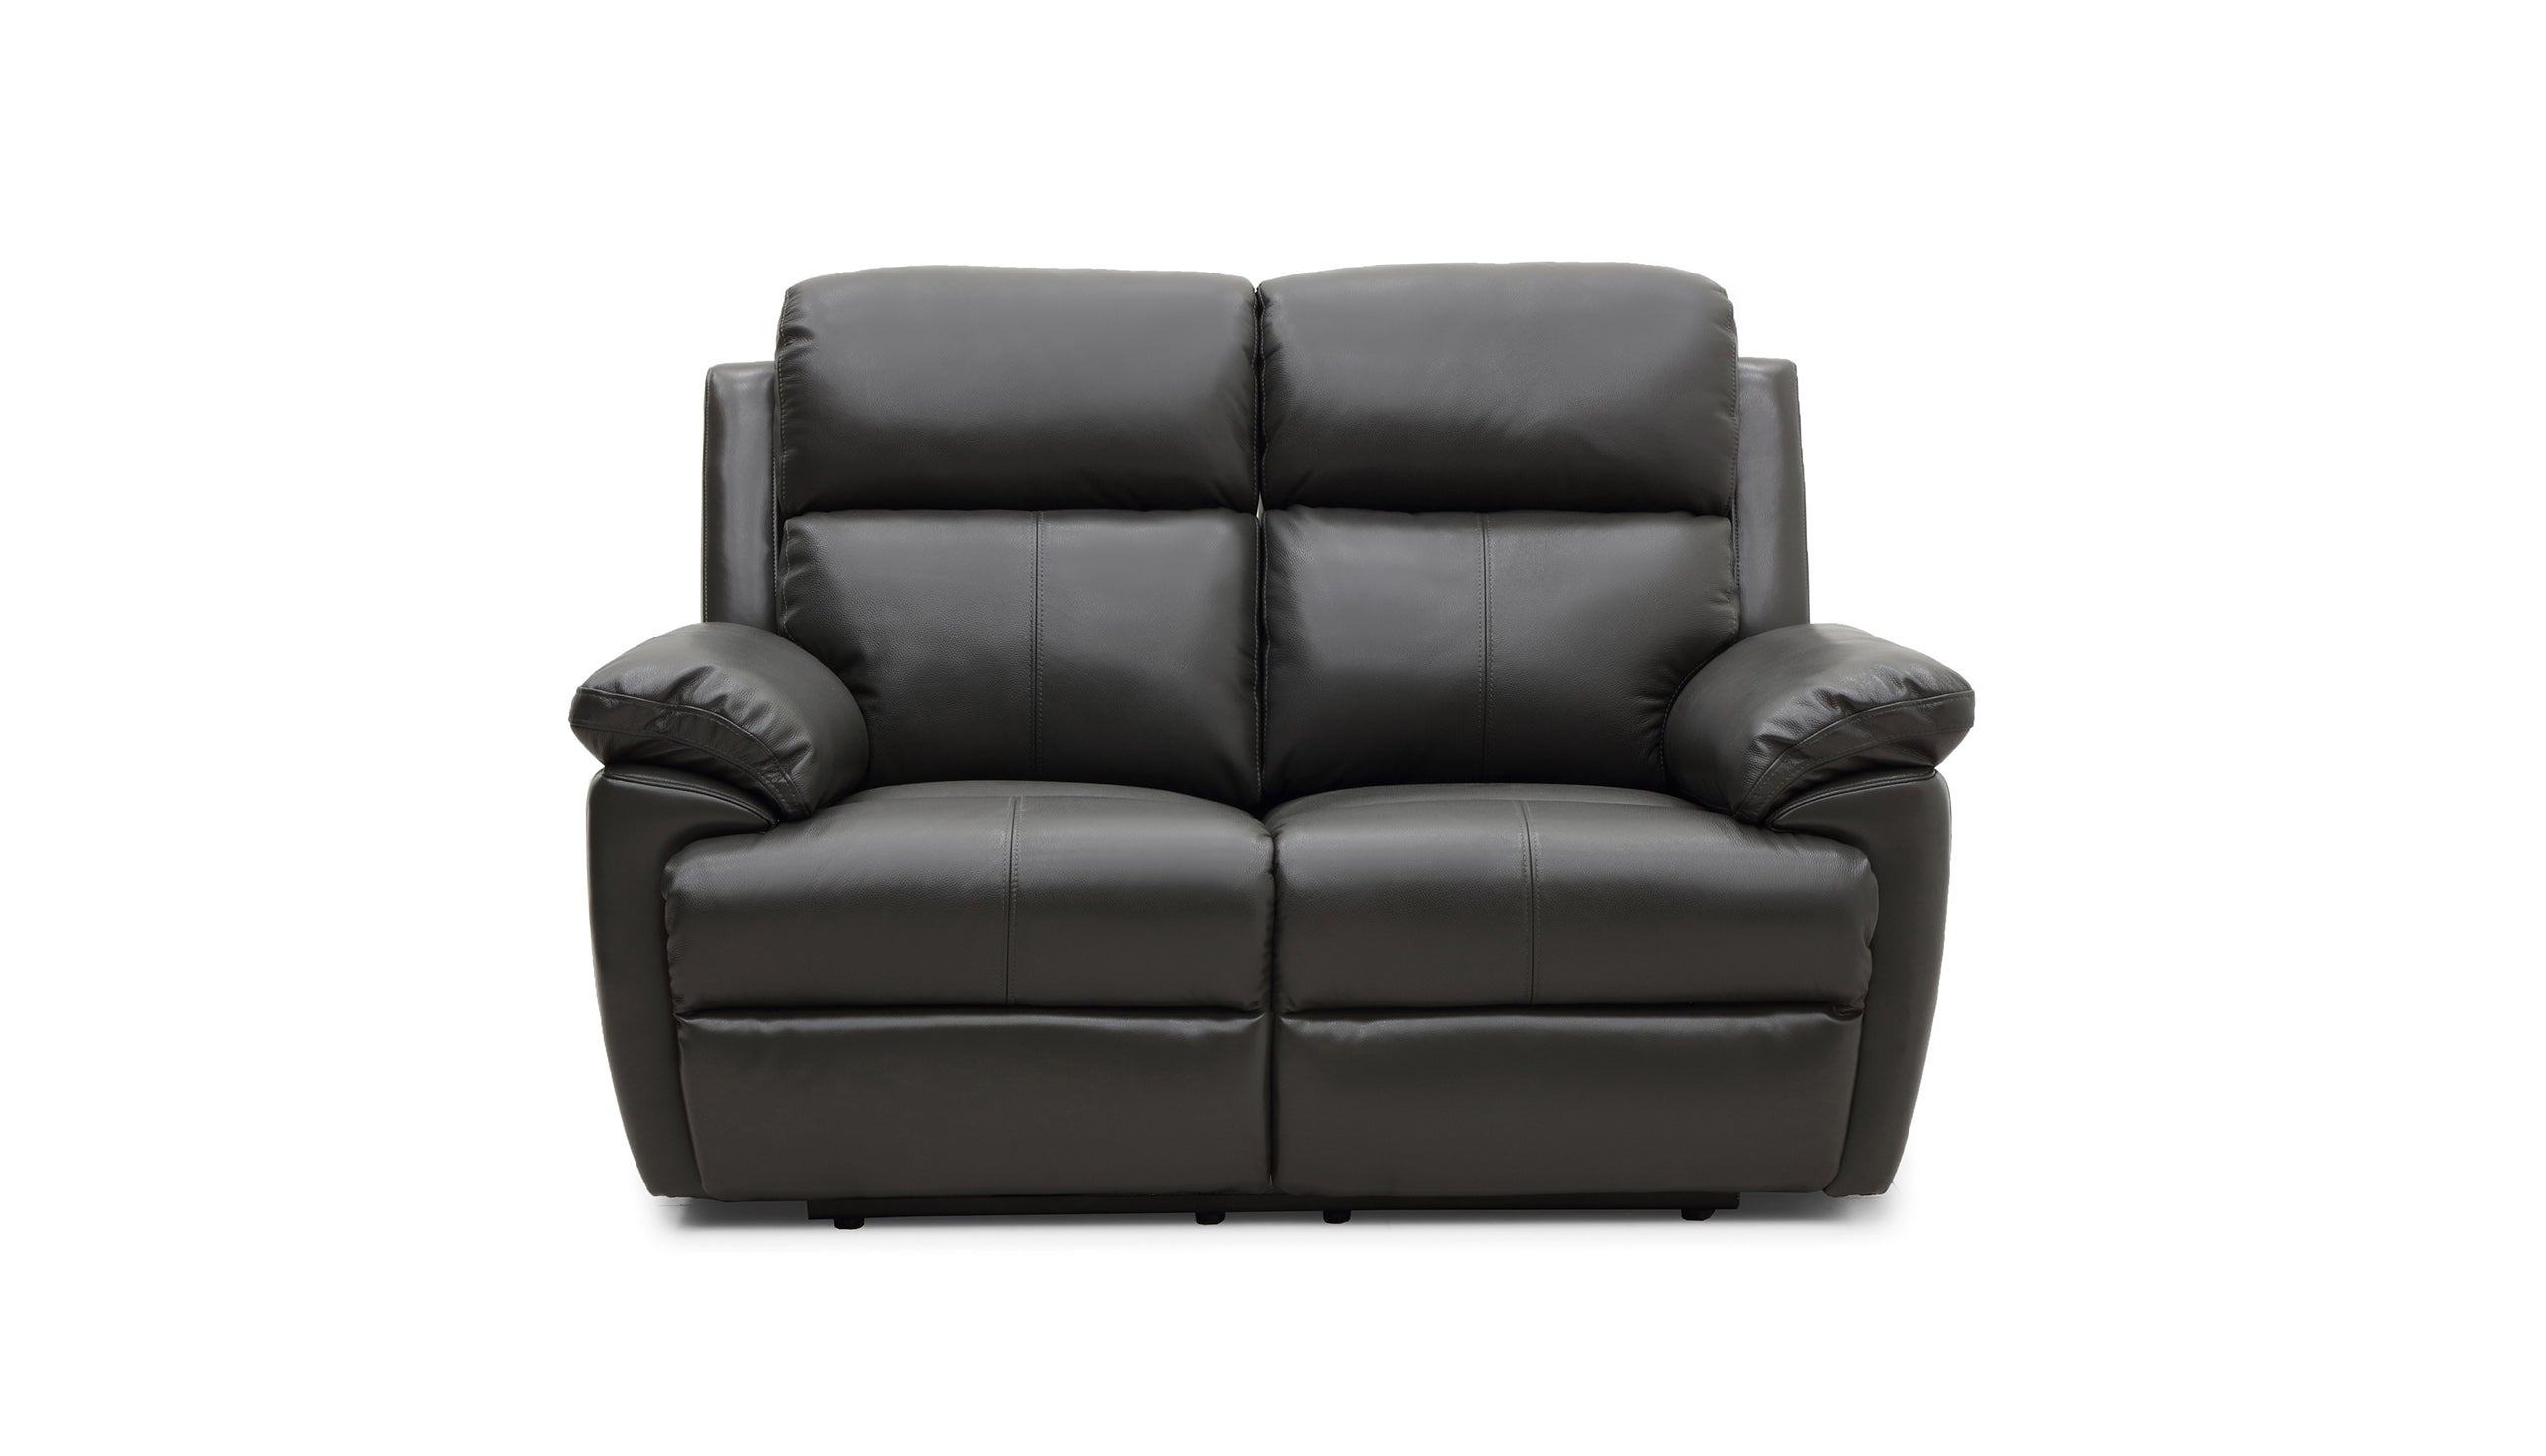 Blair 2 Seater Power Recliner Sofa with Power Headrests in Leather